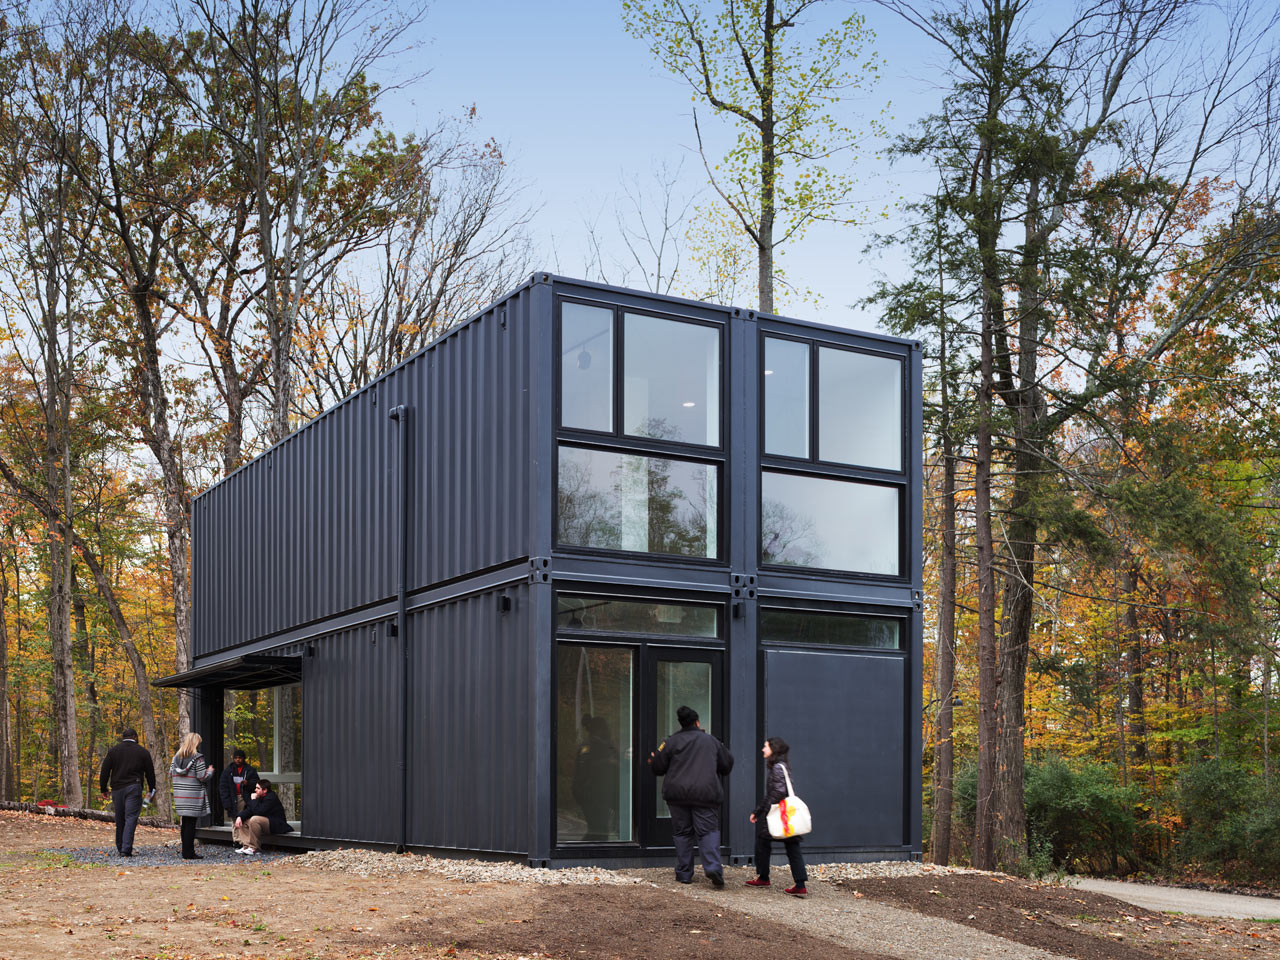 Best Kitchen Gallery: 4 Shipping Containers Be E A Classroom At Bard College Design Milk of Lab Shipping Container on rachelxblog.com